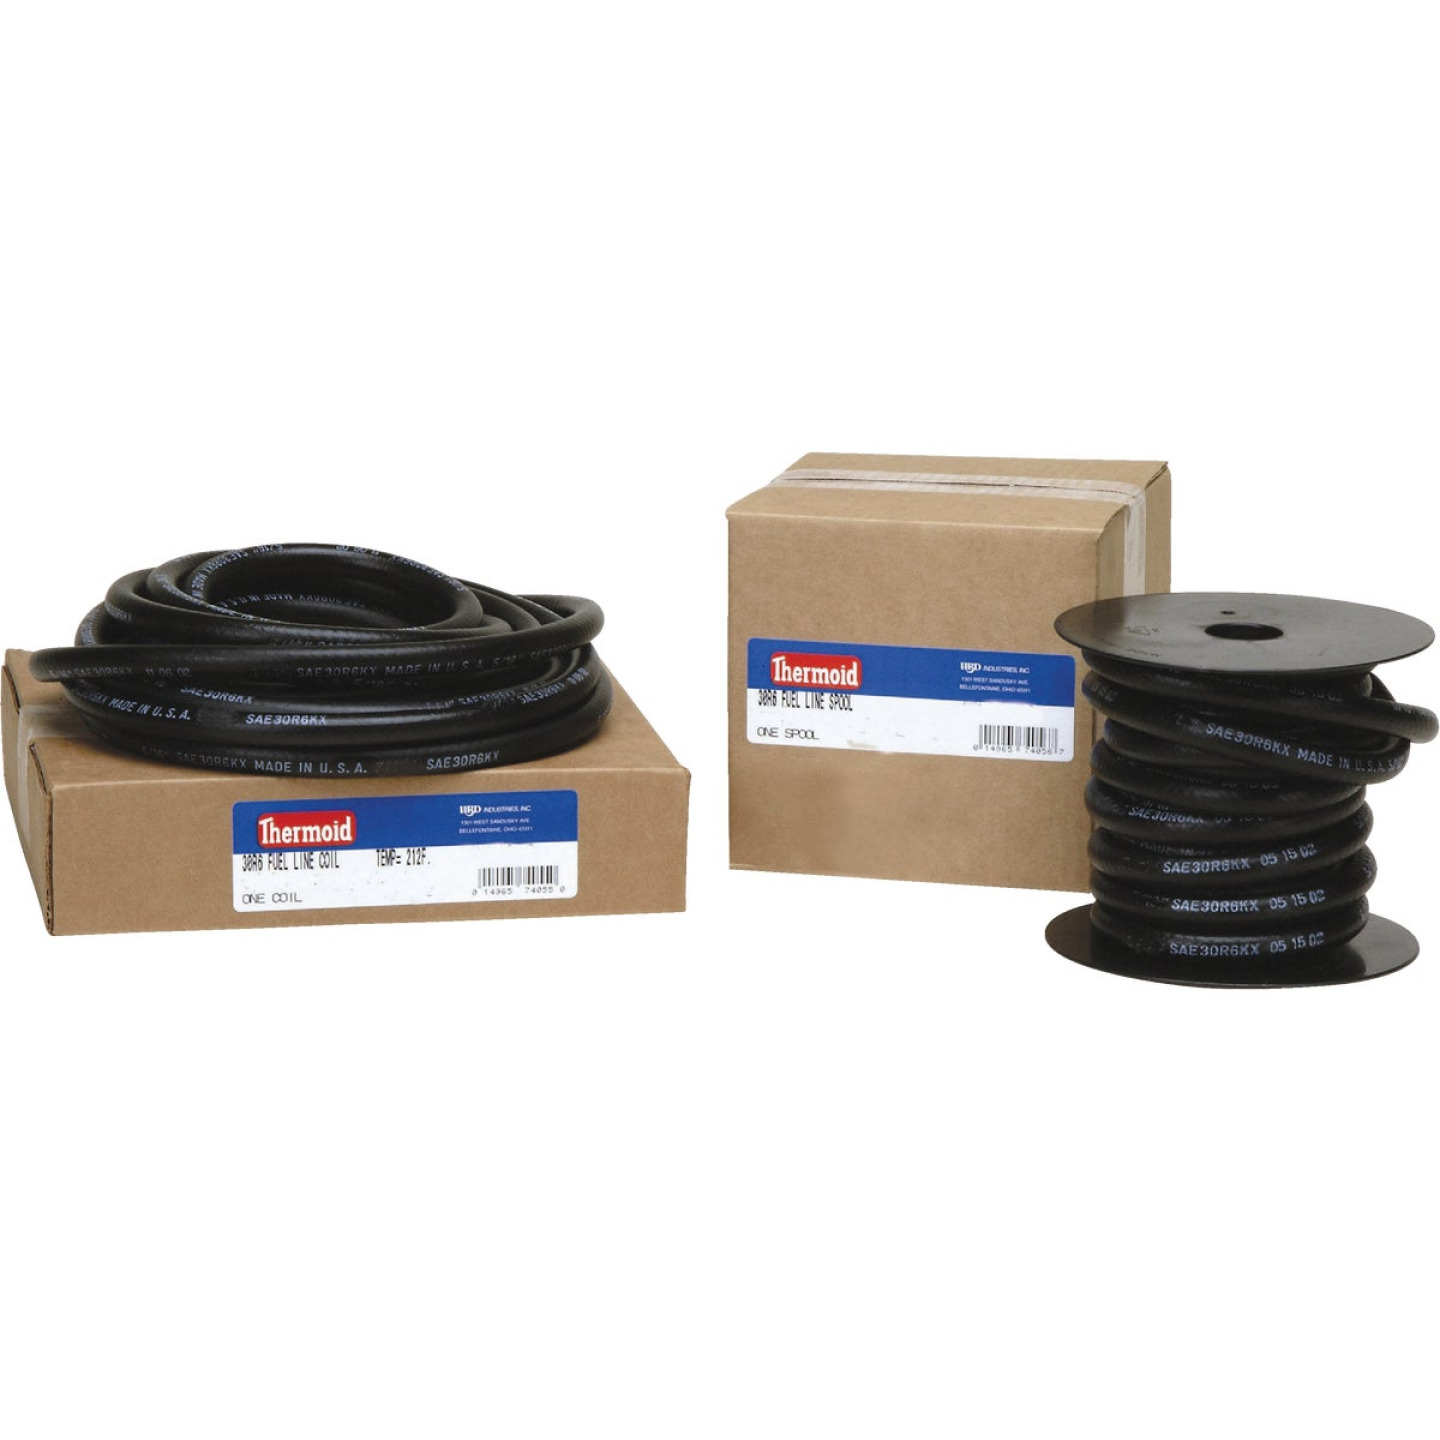 Thermoid 3/8 In. ID x 25 Ft. L. Bulk Fuel Line Hose Image 1